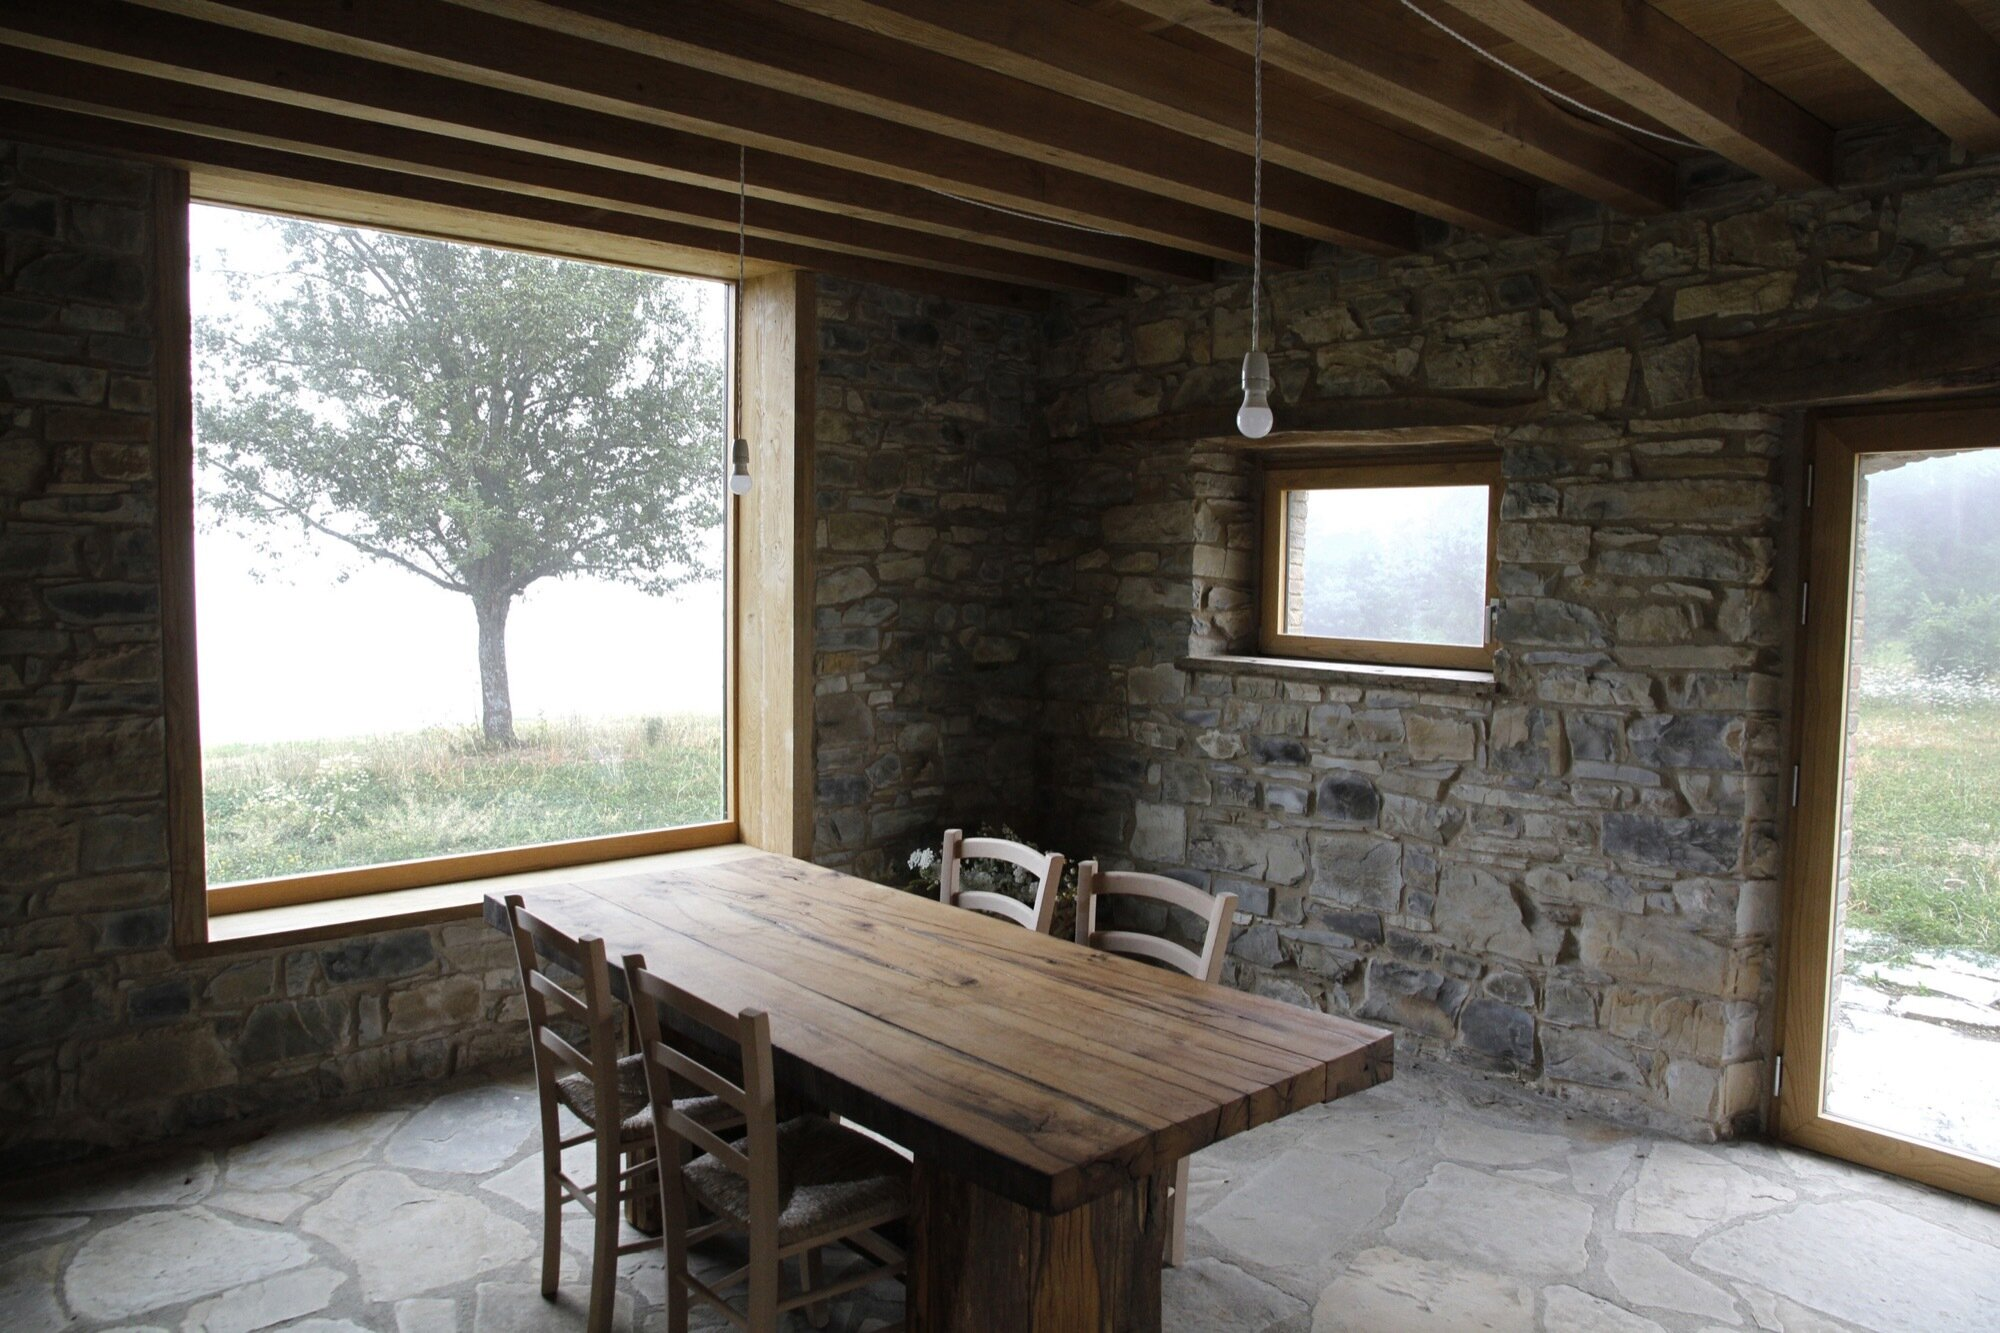 Cottage Restoration - Studio Contini - Italy - Dining and Living Room - Humble Homes